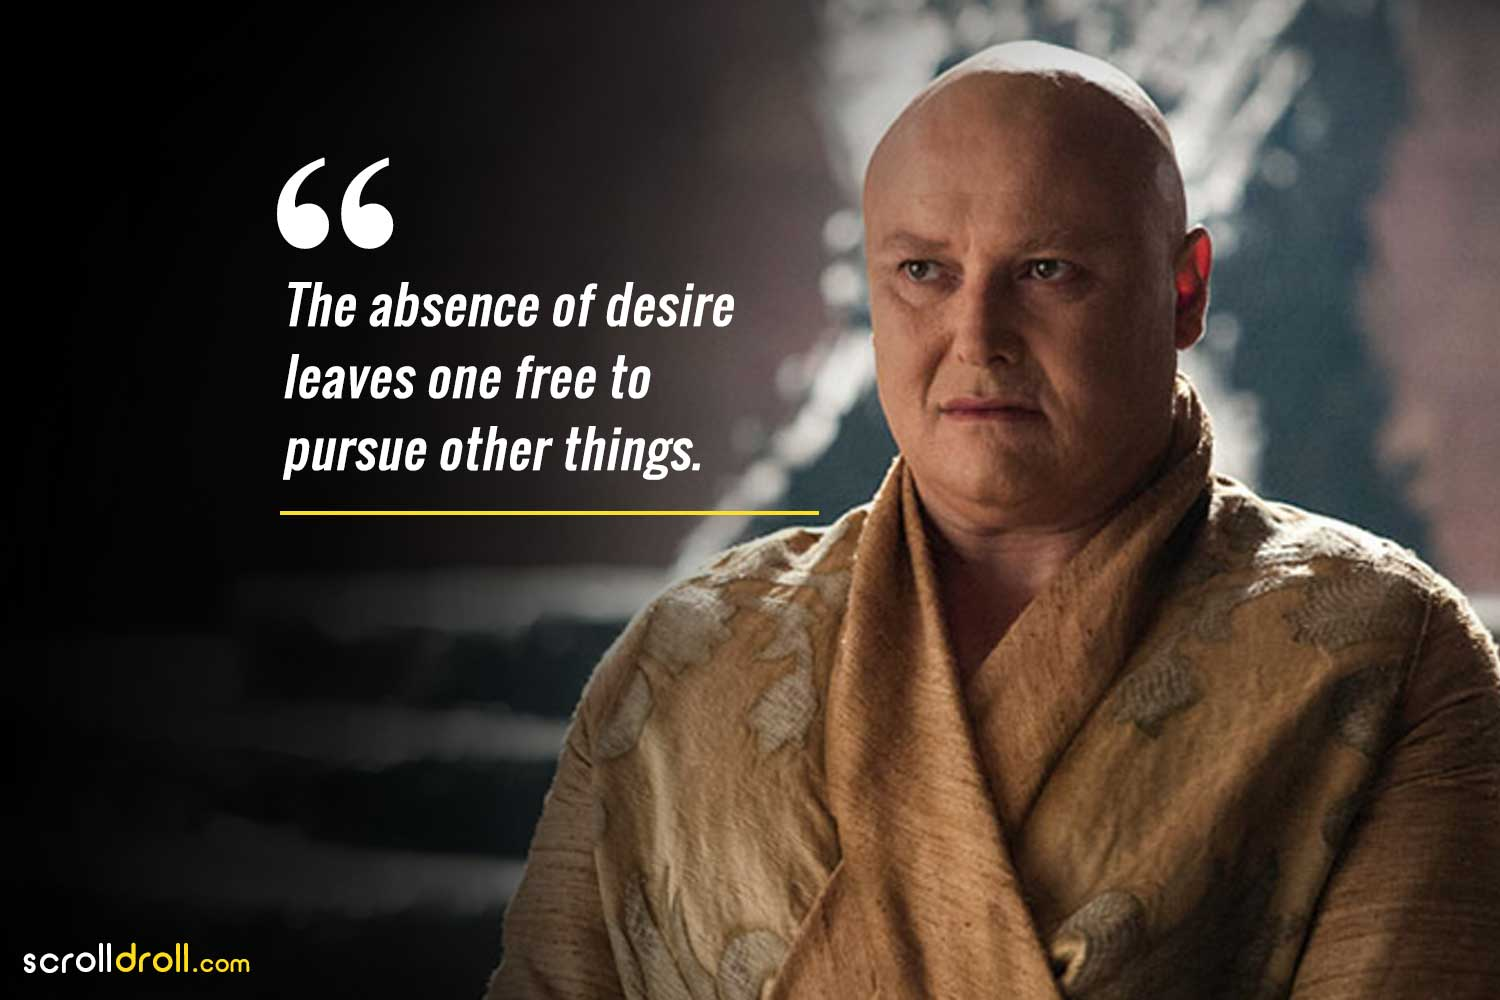 the absence of desire leave one free to pursue other things.-lord varys quotes